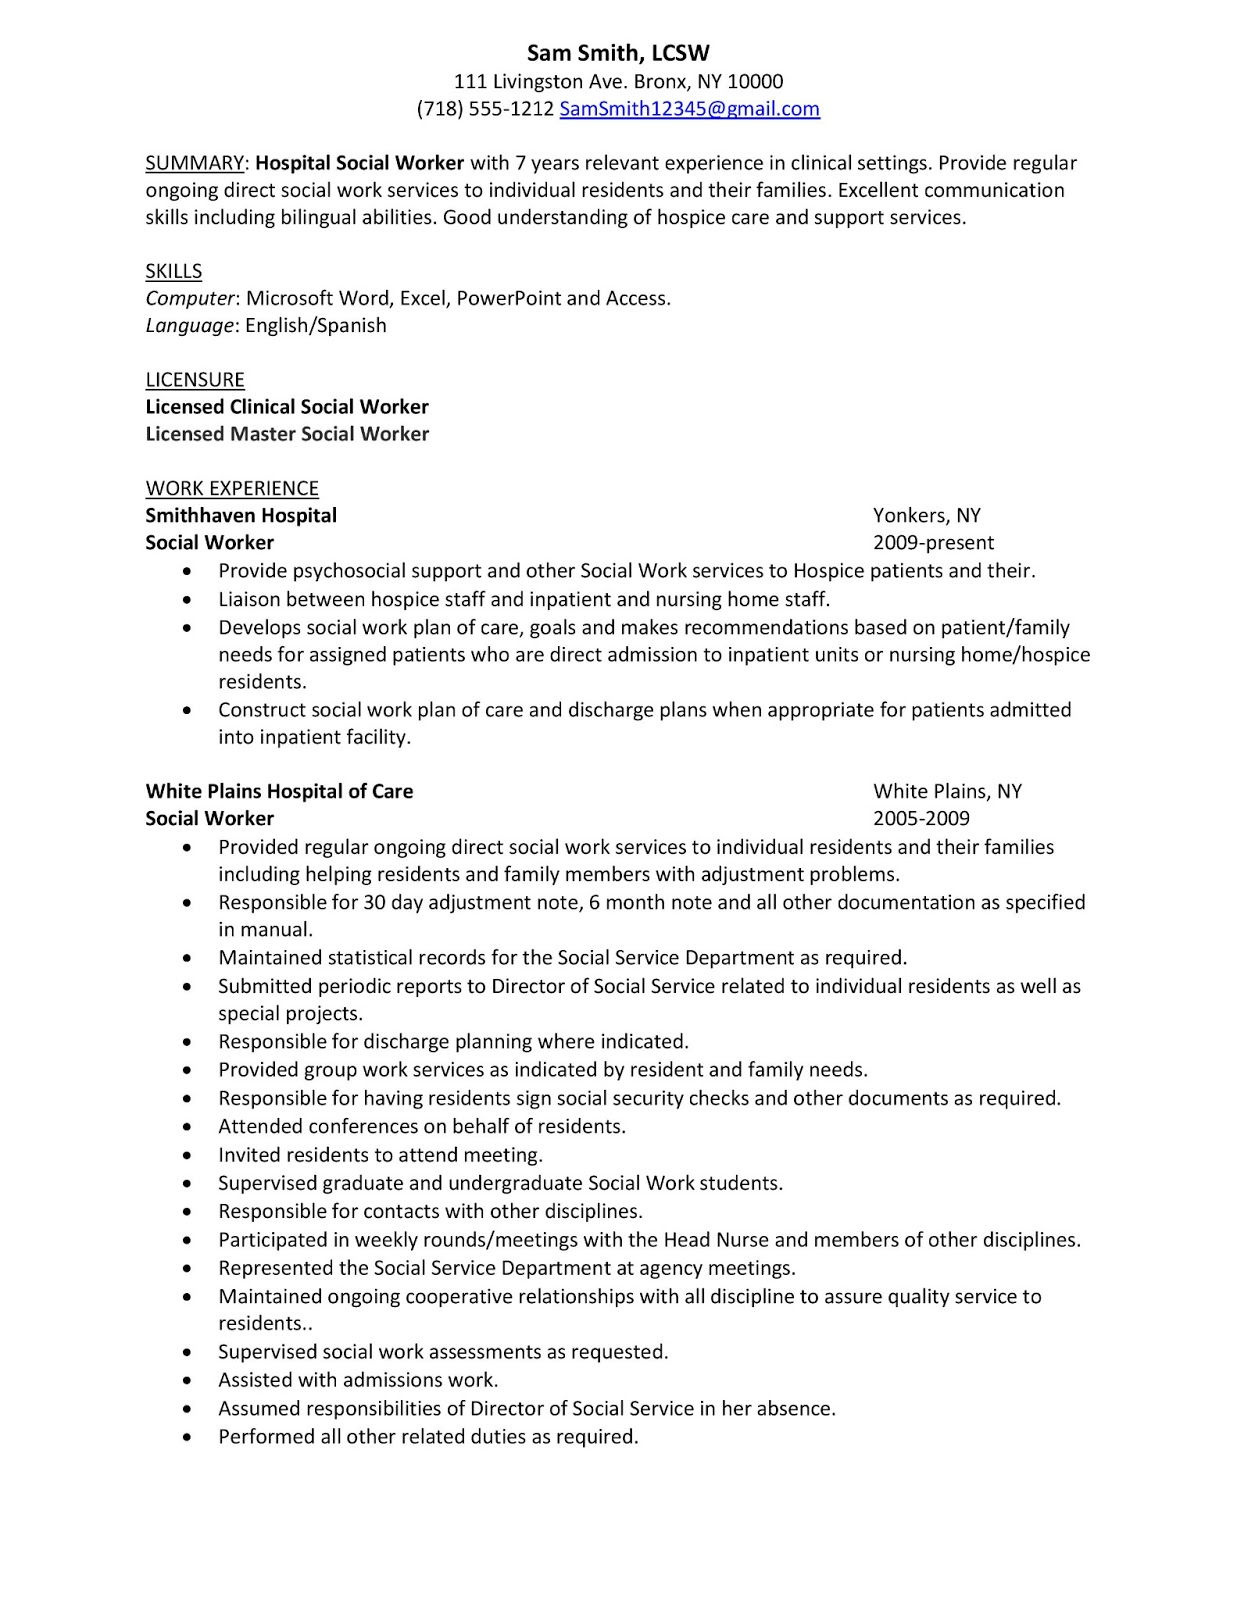 Medical Social Worker Resume Sample Resume Hospital Social Worker Winning Answers To